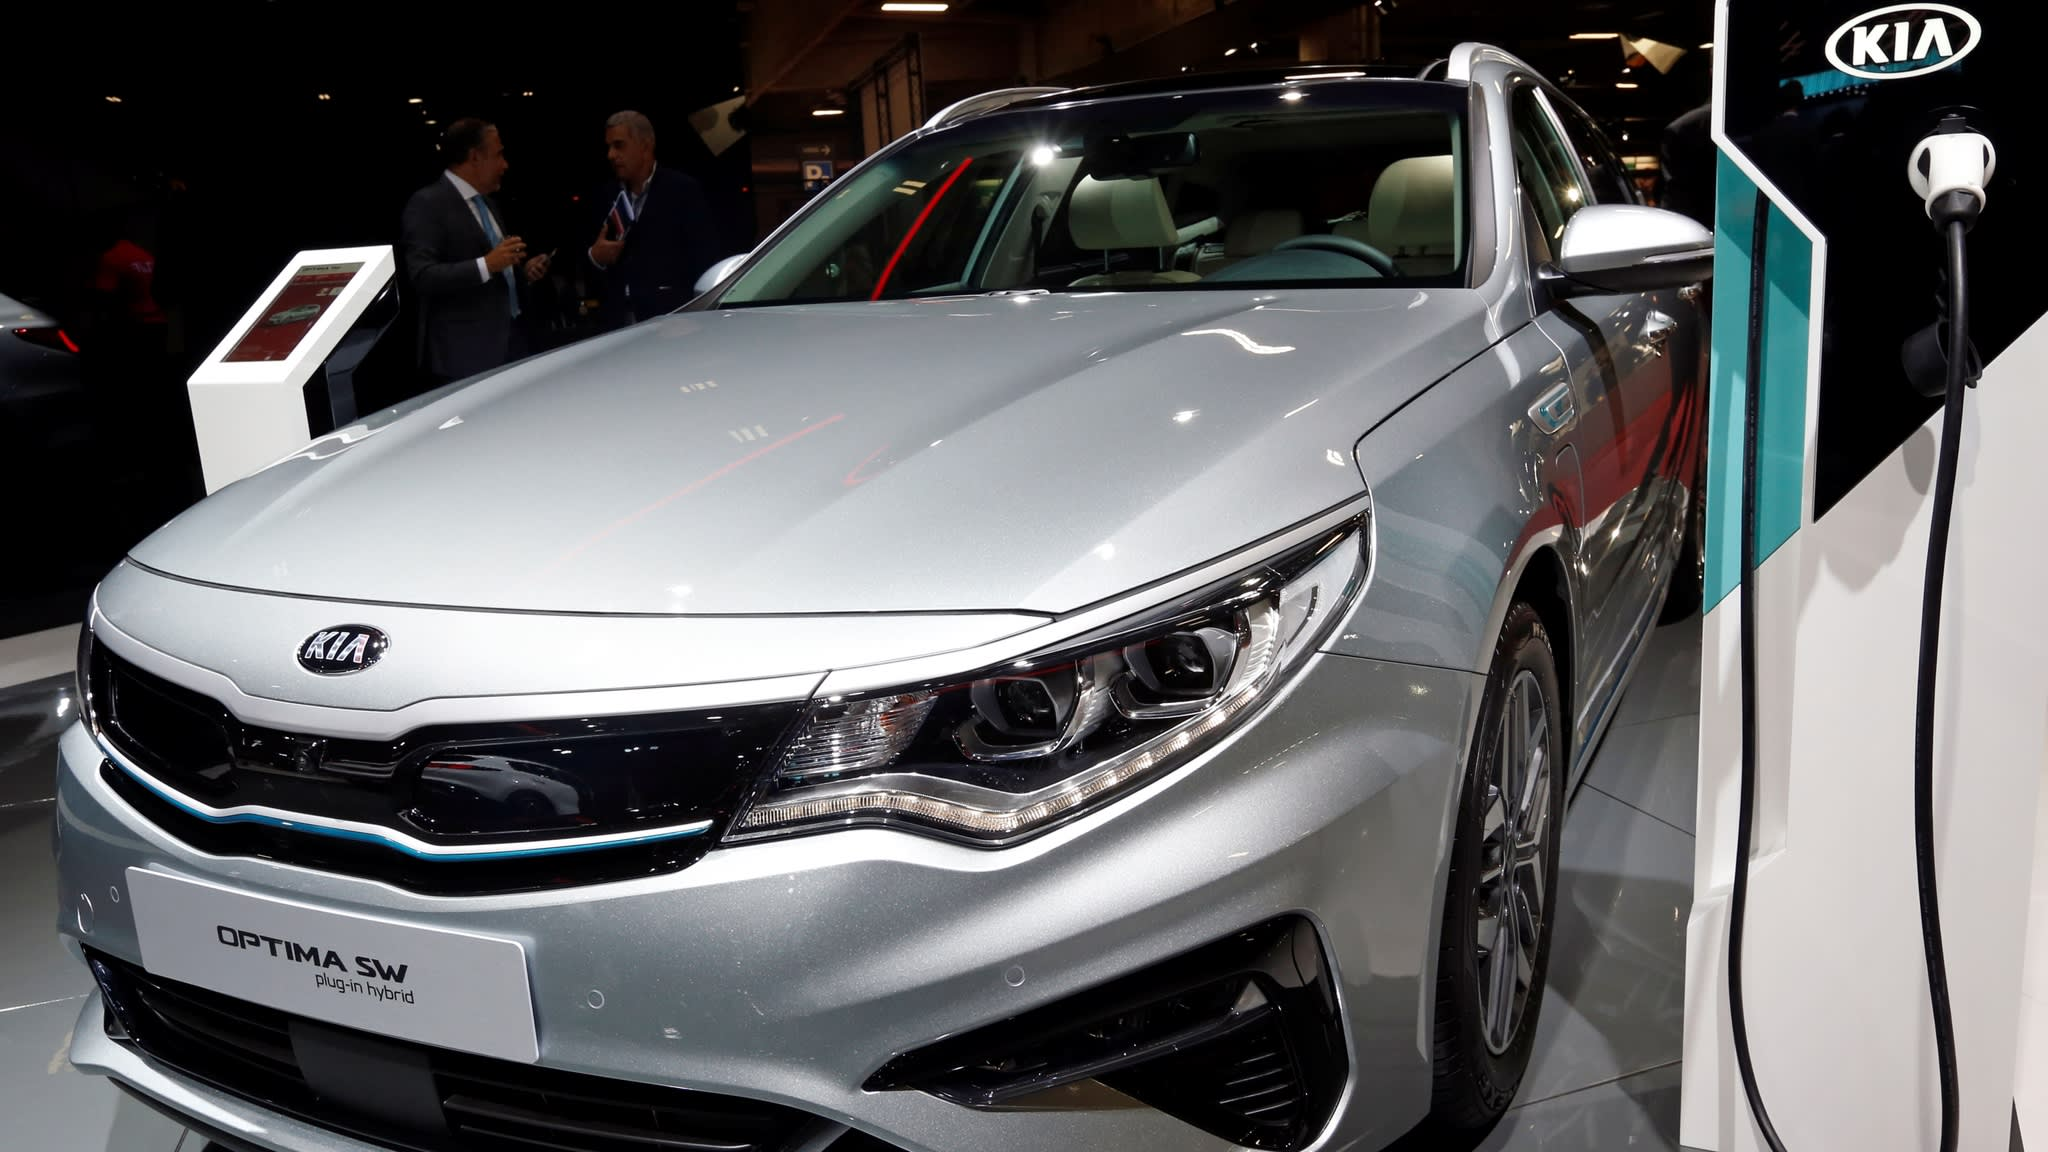 The Production and Sales of Korean Car Companies Last Year Has Been Declining for Three Consecutive Years